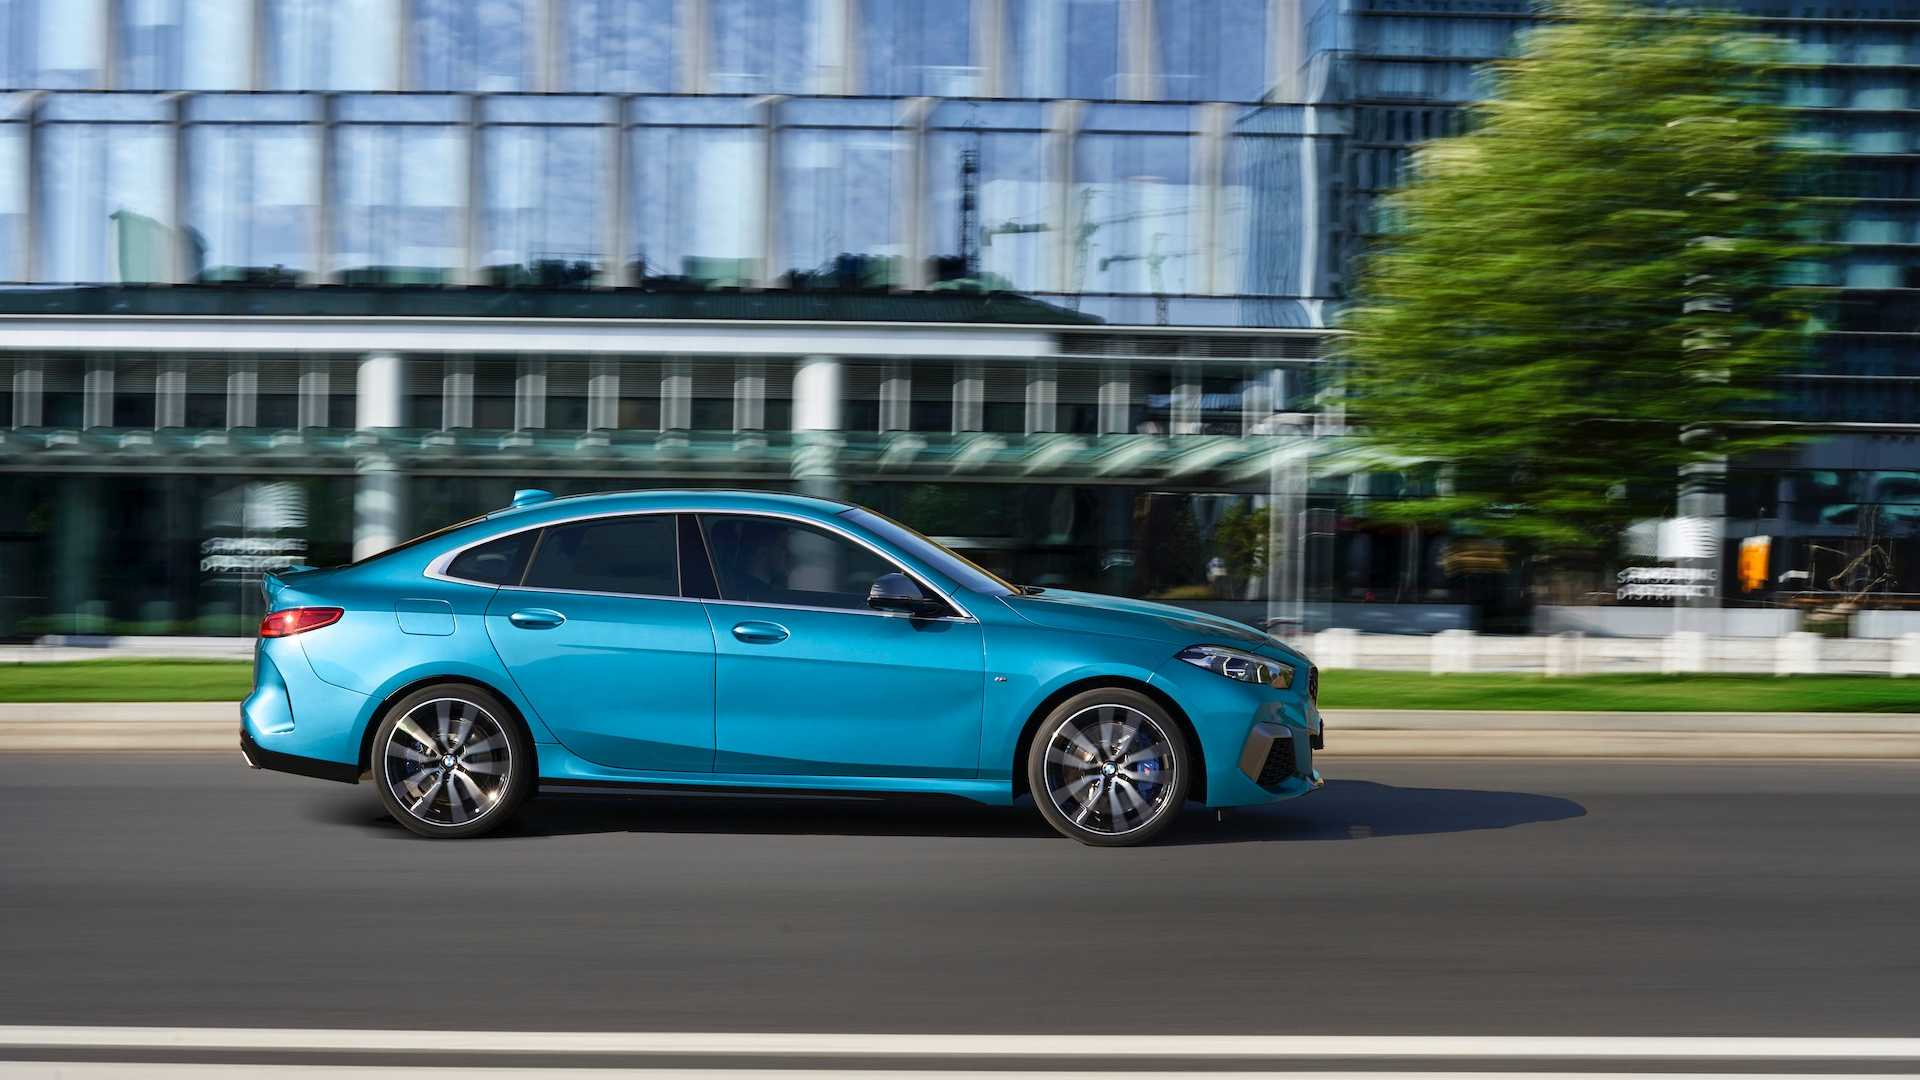 2020-bmw-2-series-gran-coupe-26